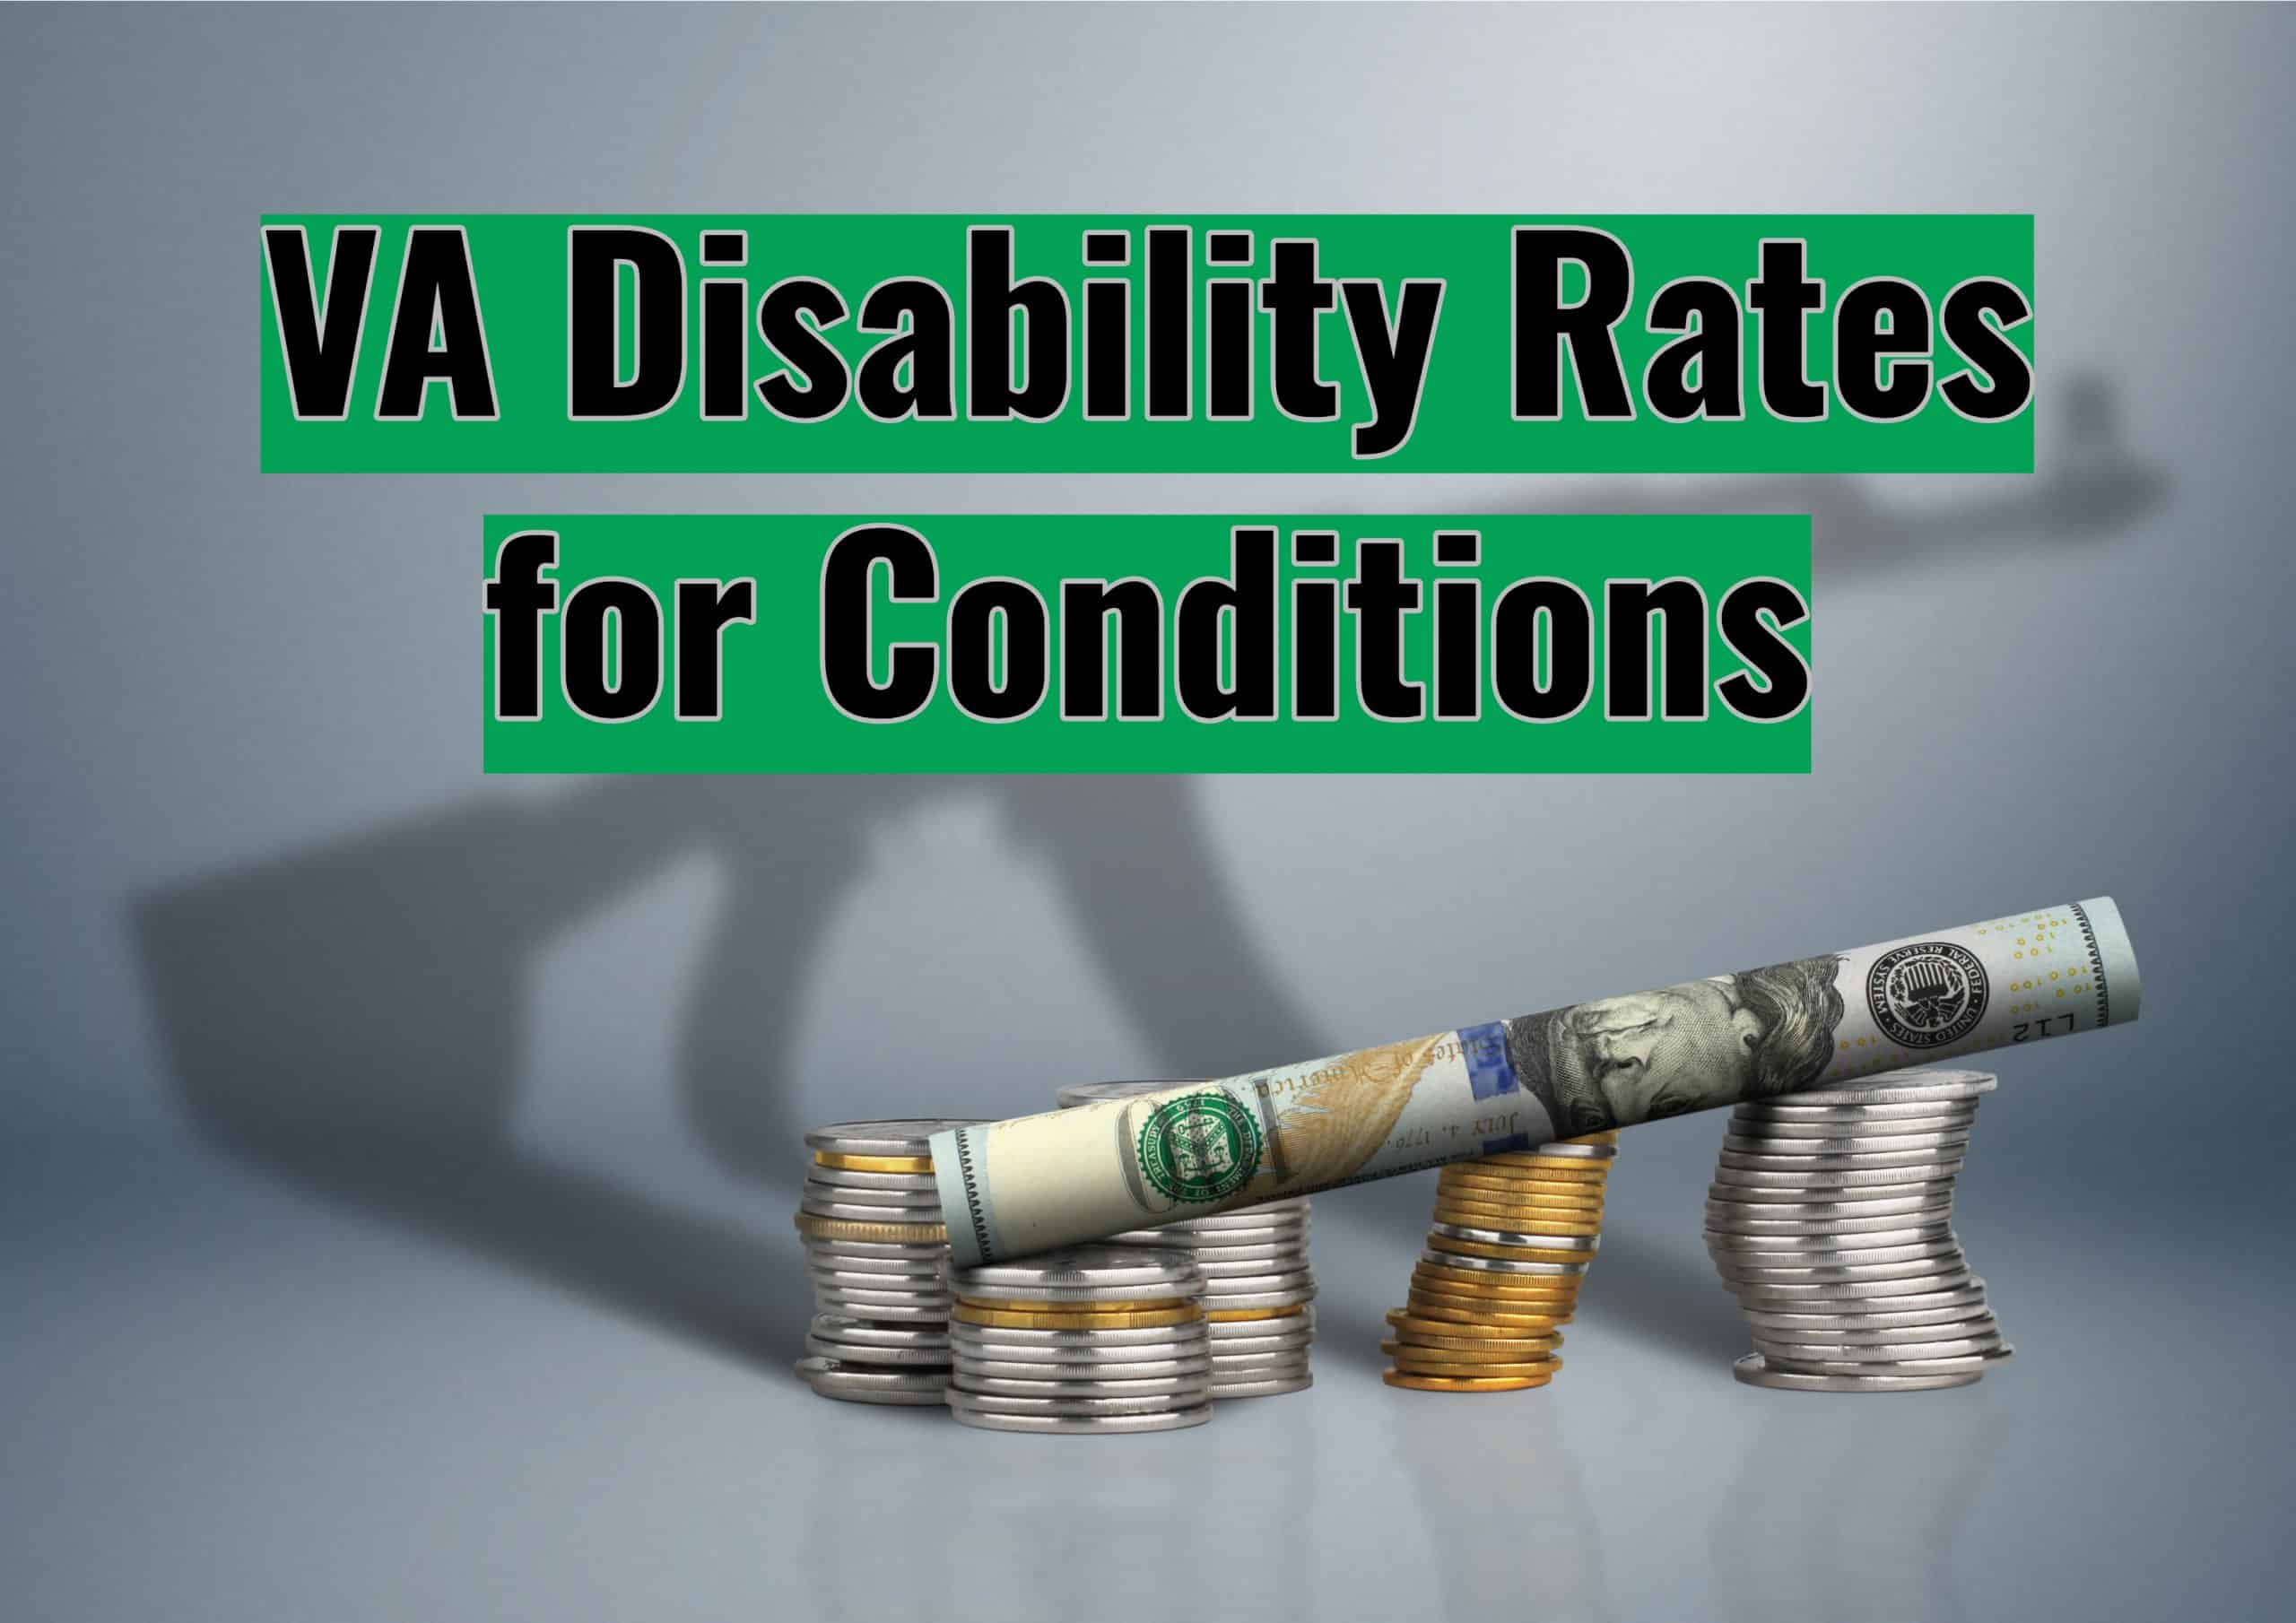 VA Disability Rates for Conditions 1 scaled